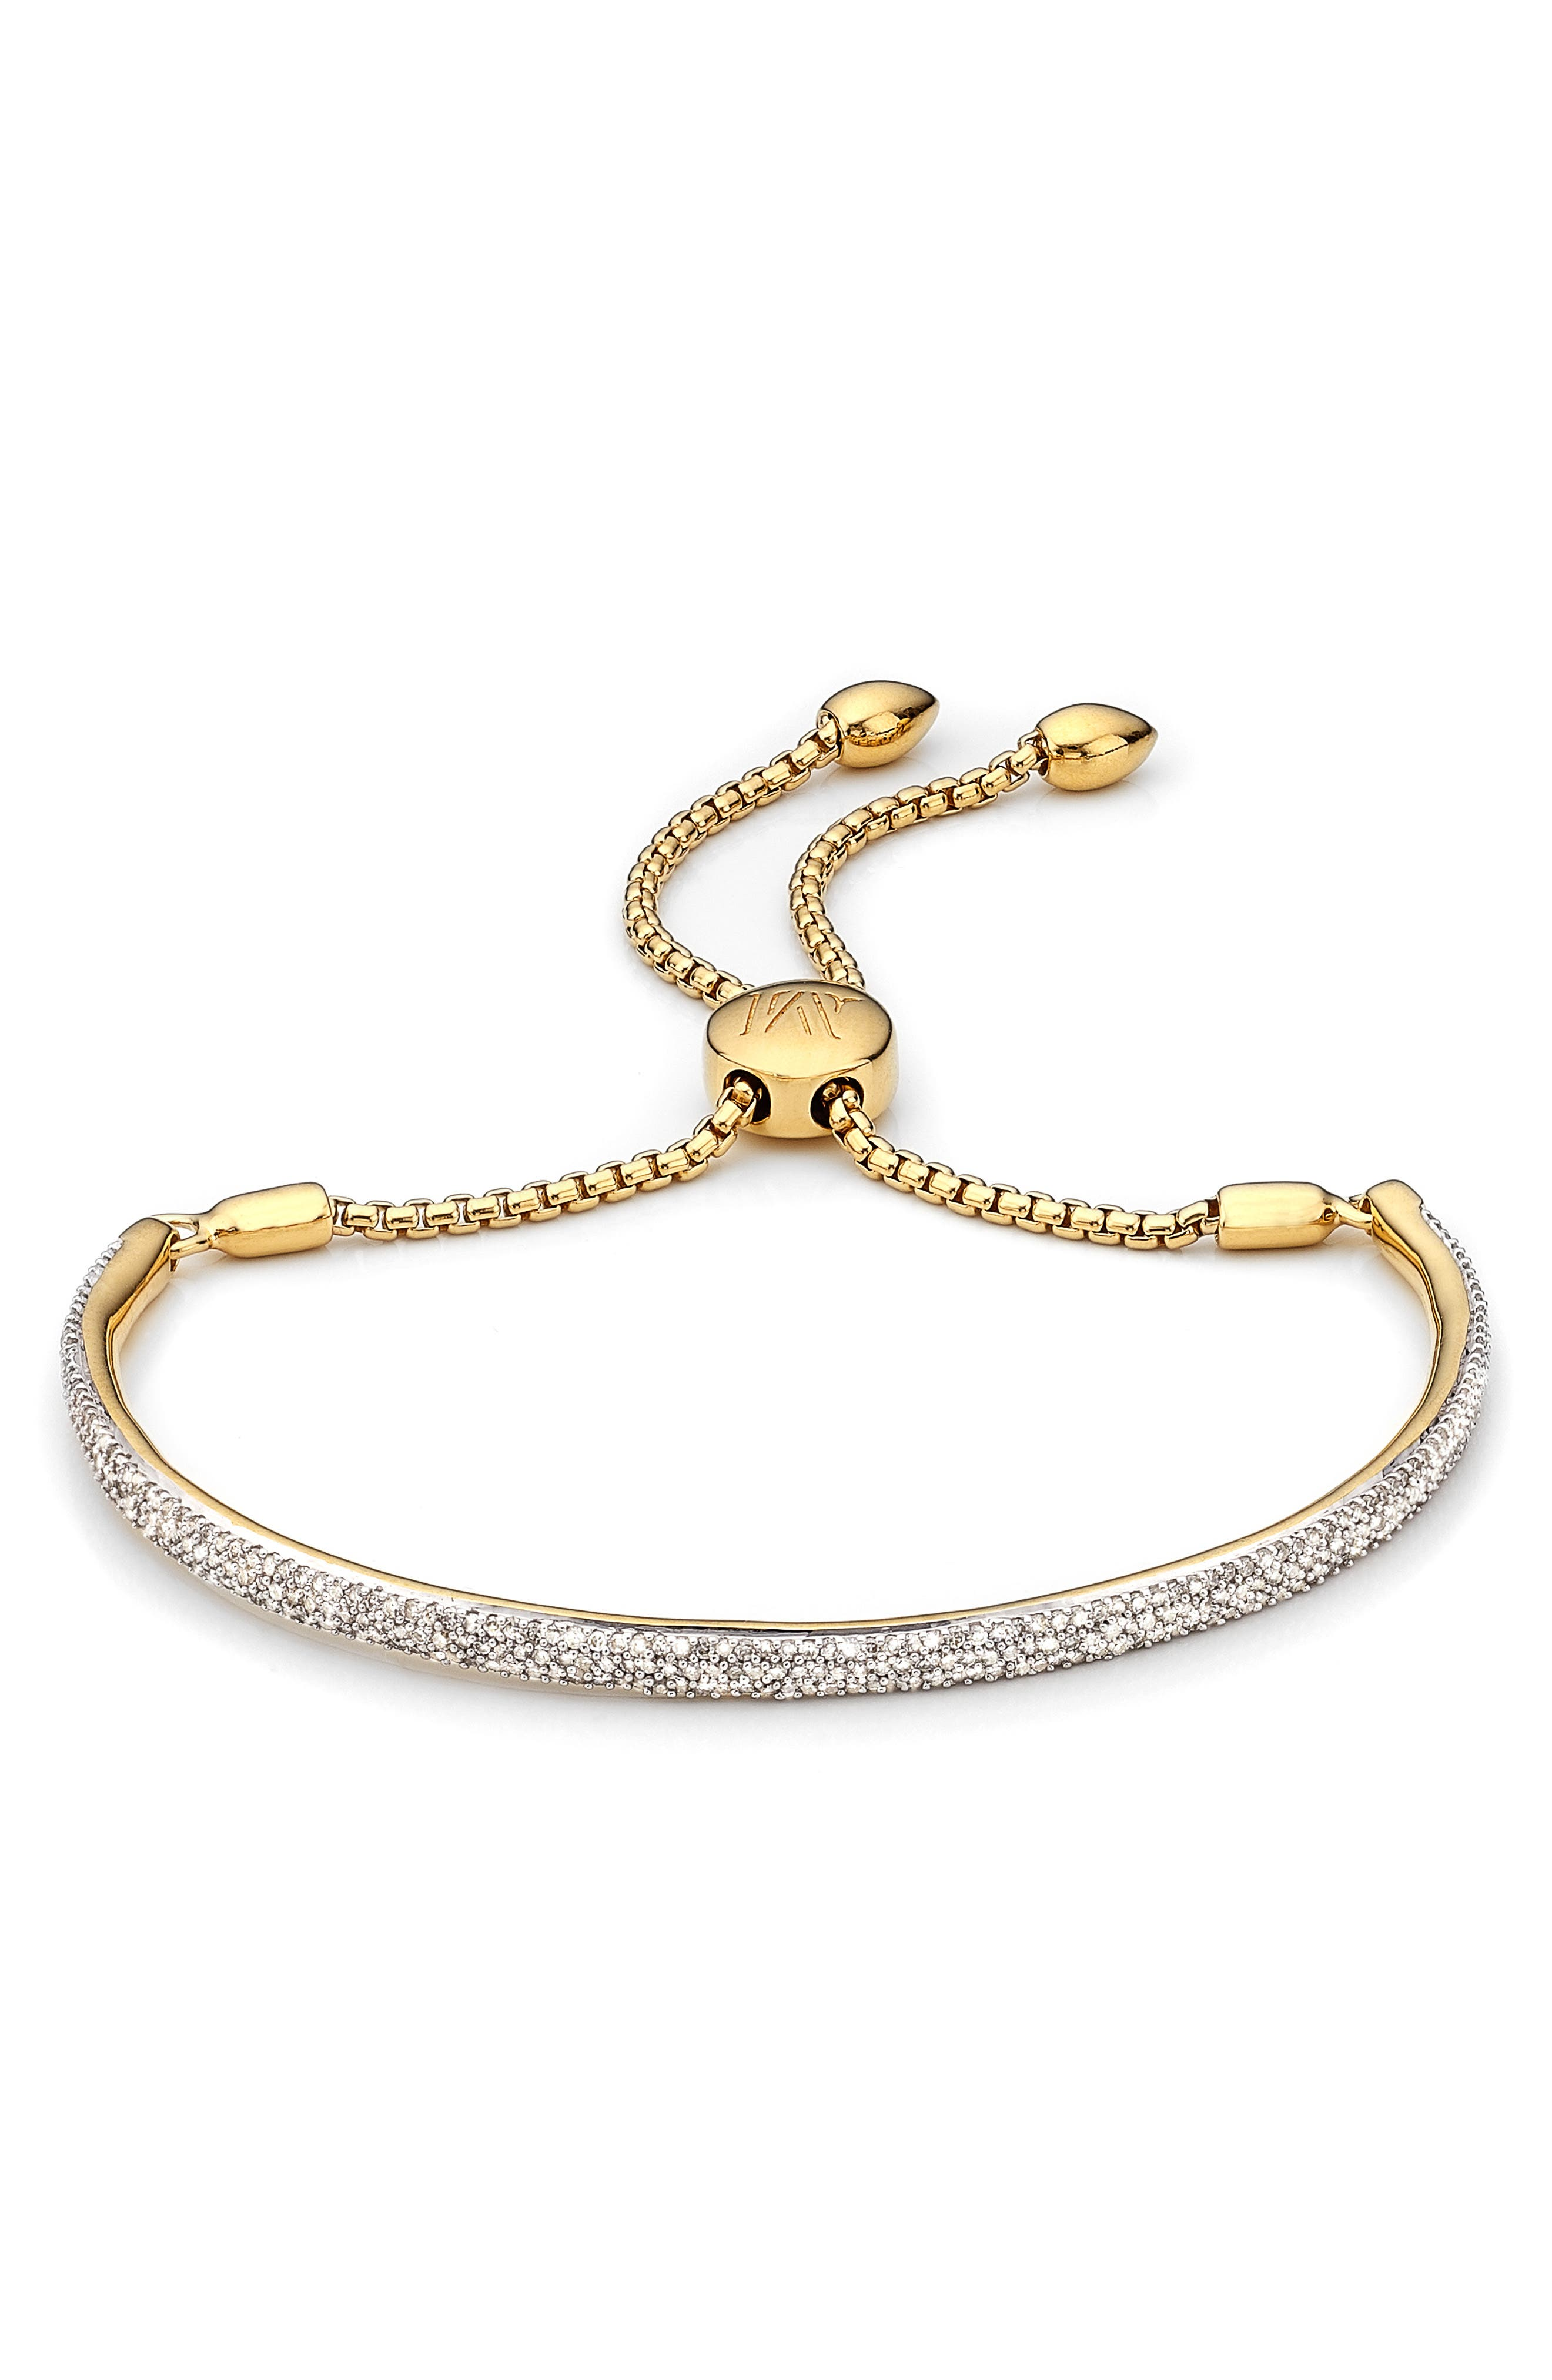 Fiji Diamond Pavé Toggle Petite Bracelet,                             Alternate thumbnail 2, color,                             YELLOW GOLD